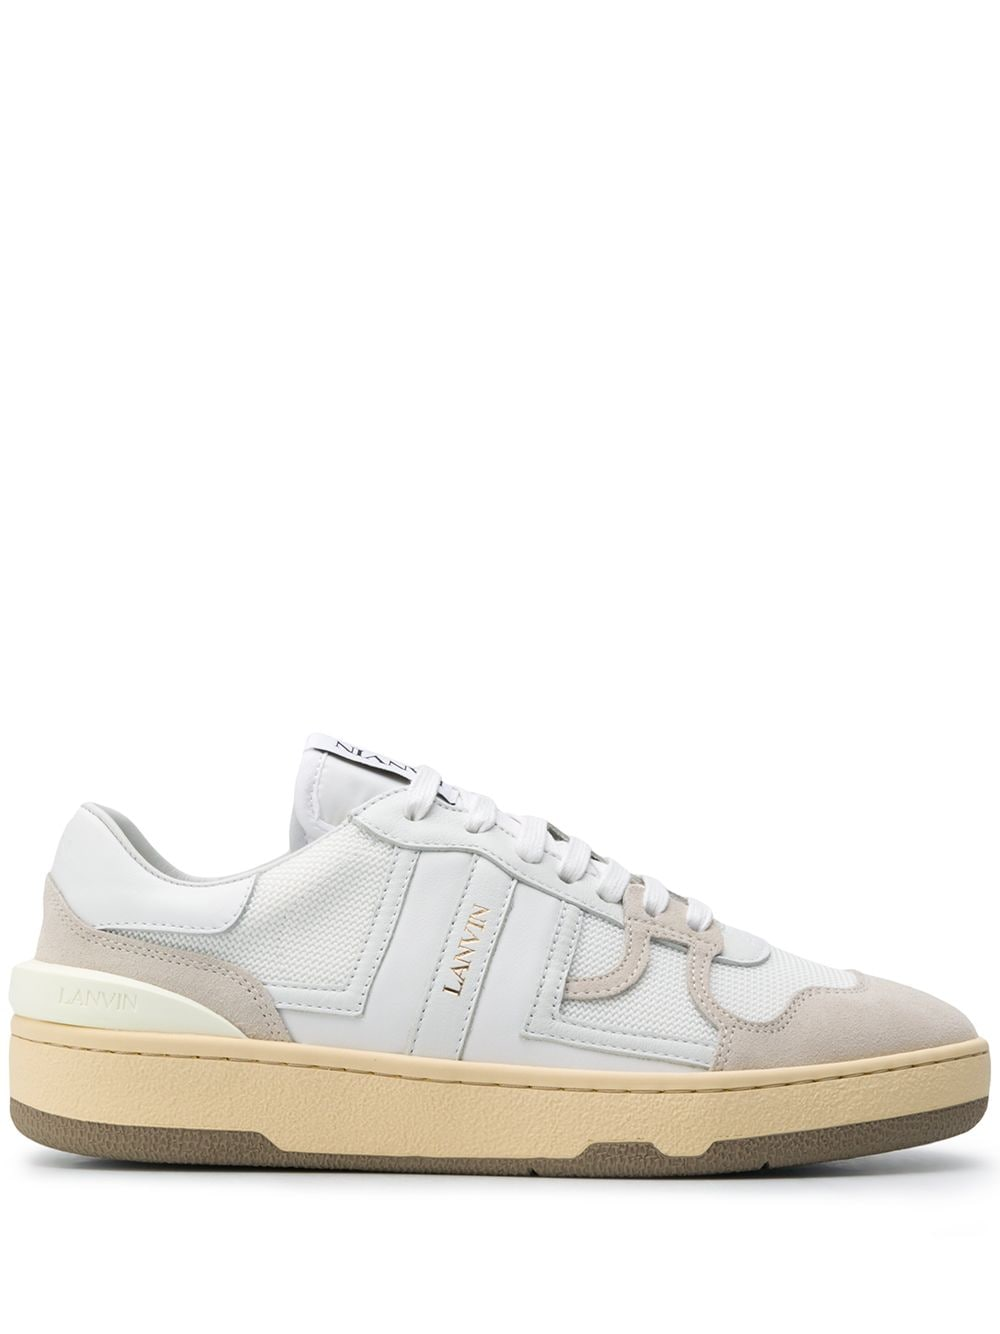 LANVIN WOMEN THE CLAY LOW TOP SNEAKERS